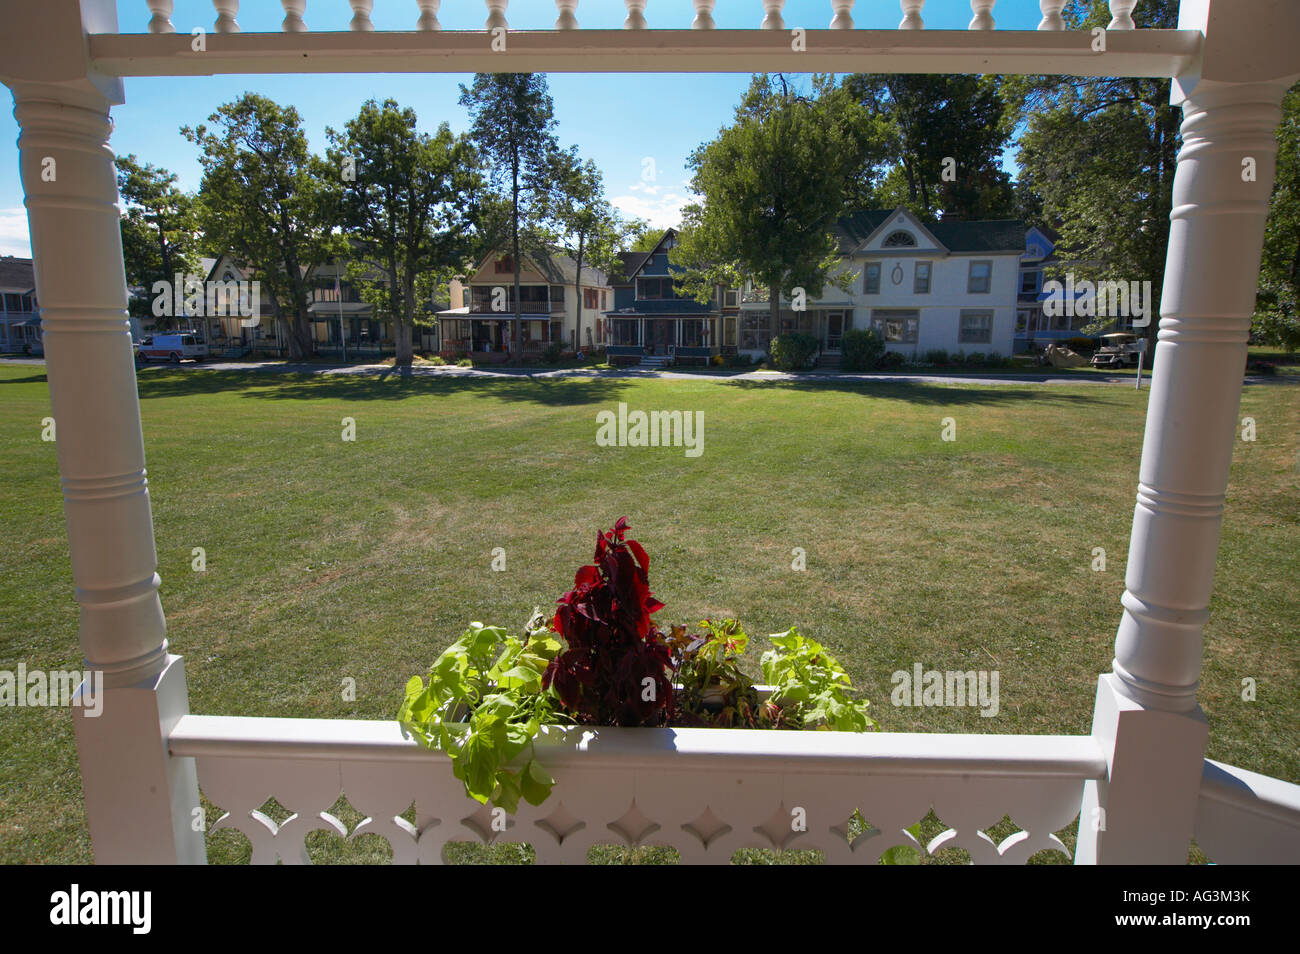 Gazebo at Victorian cottages in Thousand Island Park on Wellesley Island in the Thousand Island St Lawrence Seaway - Stock Image